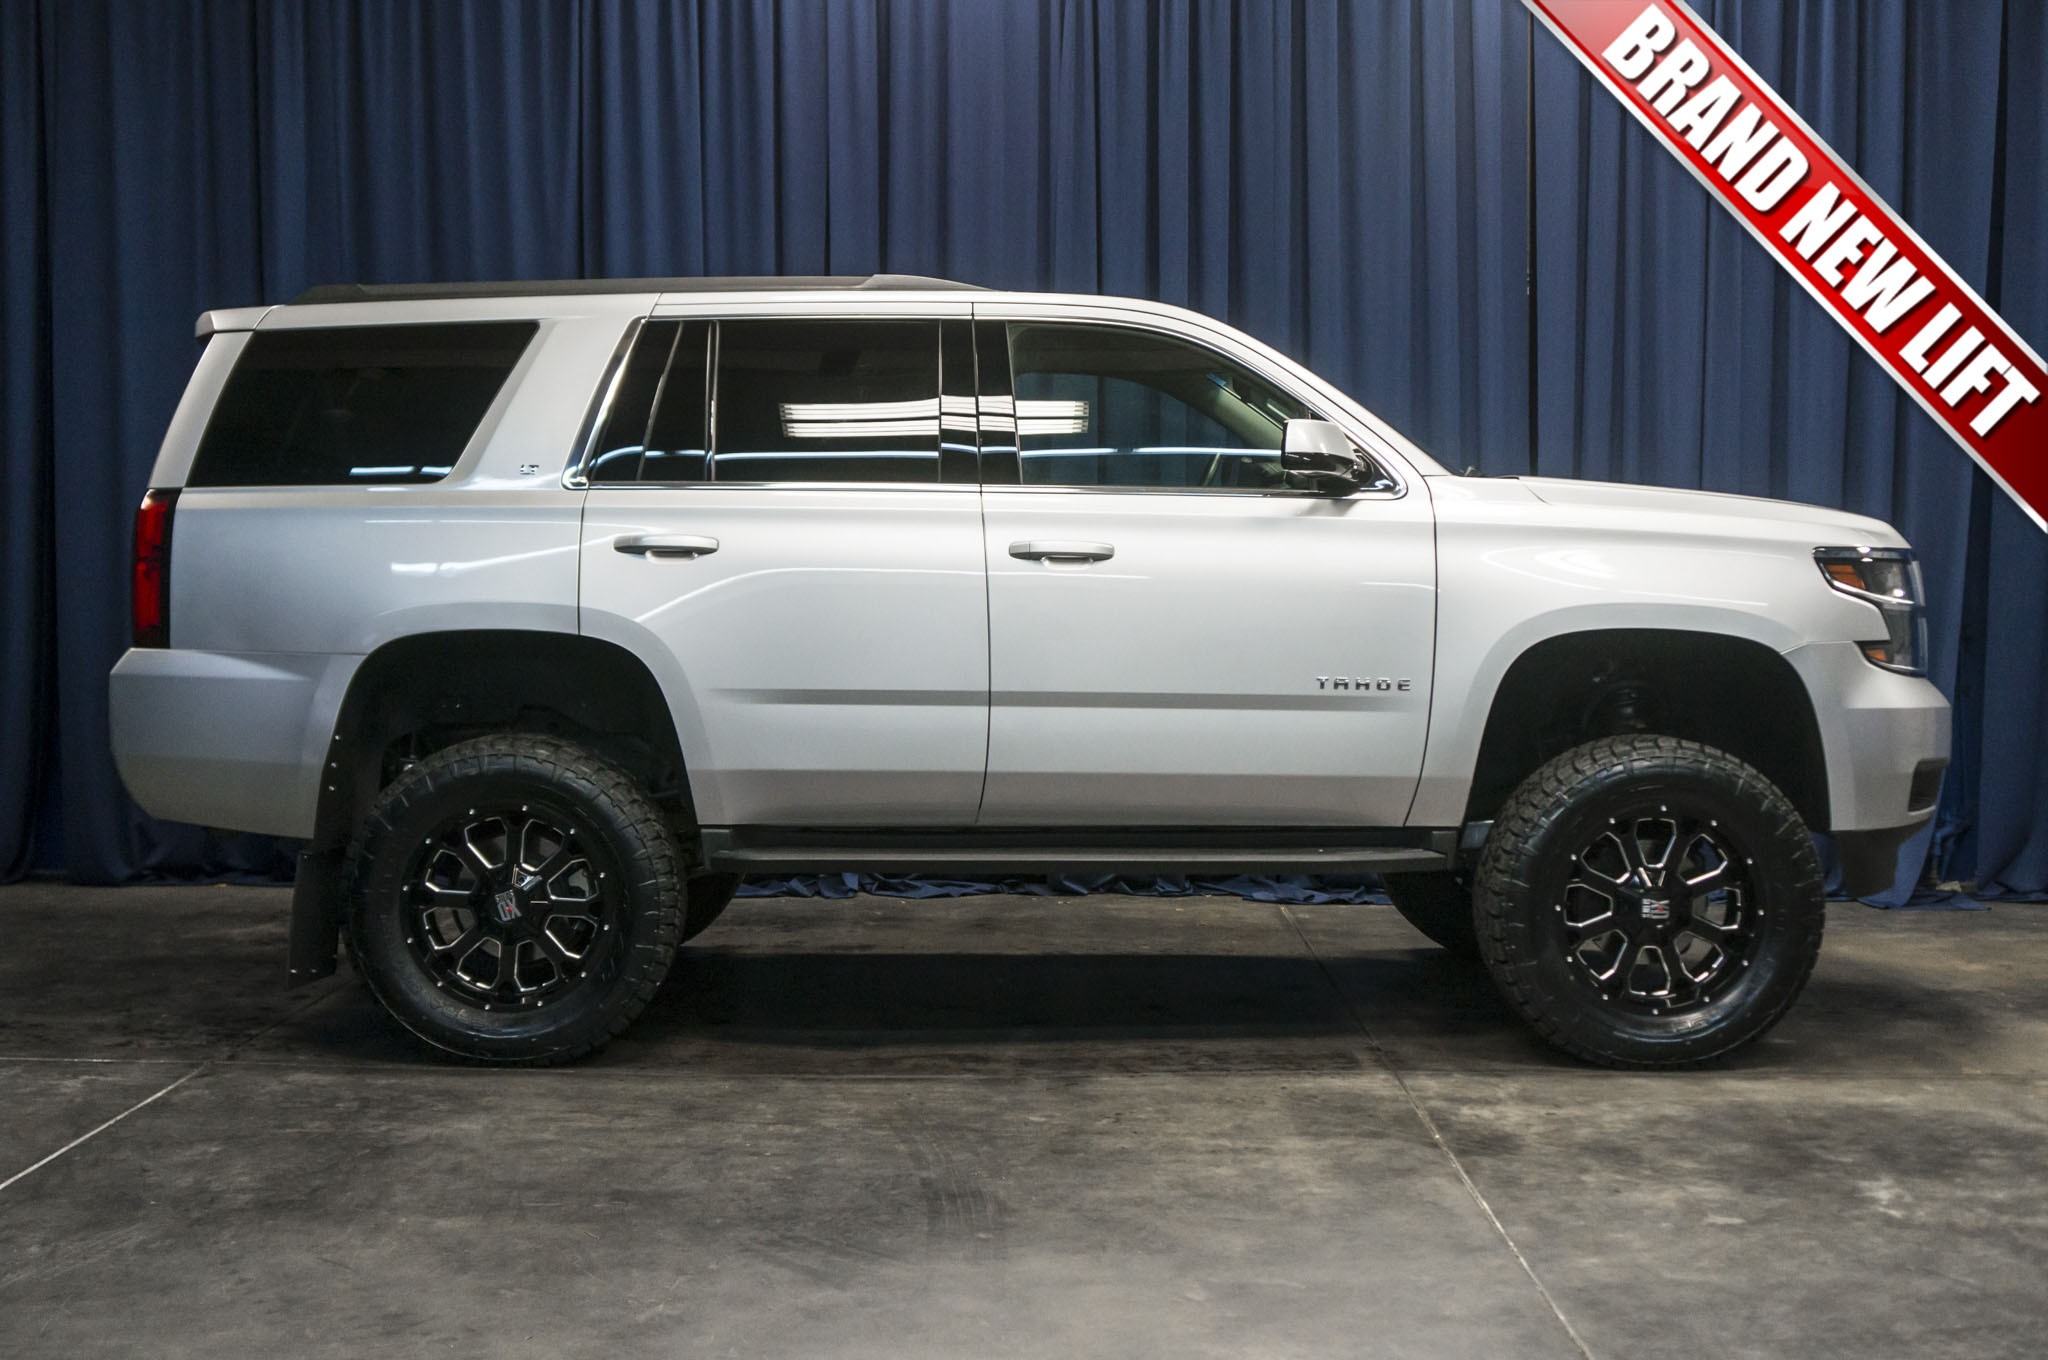 Gmc Columbia Sc >> Tahoe 4x4 Lifted For Sale | Autos Post